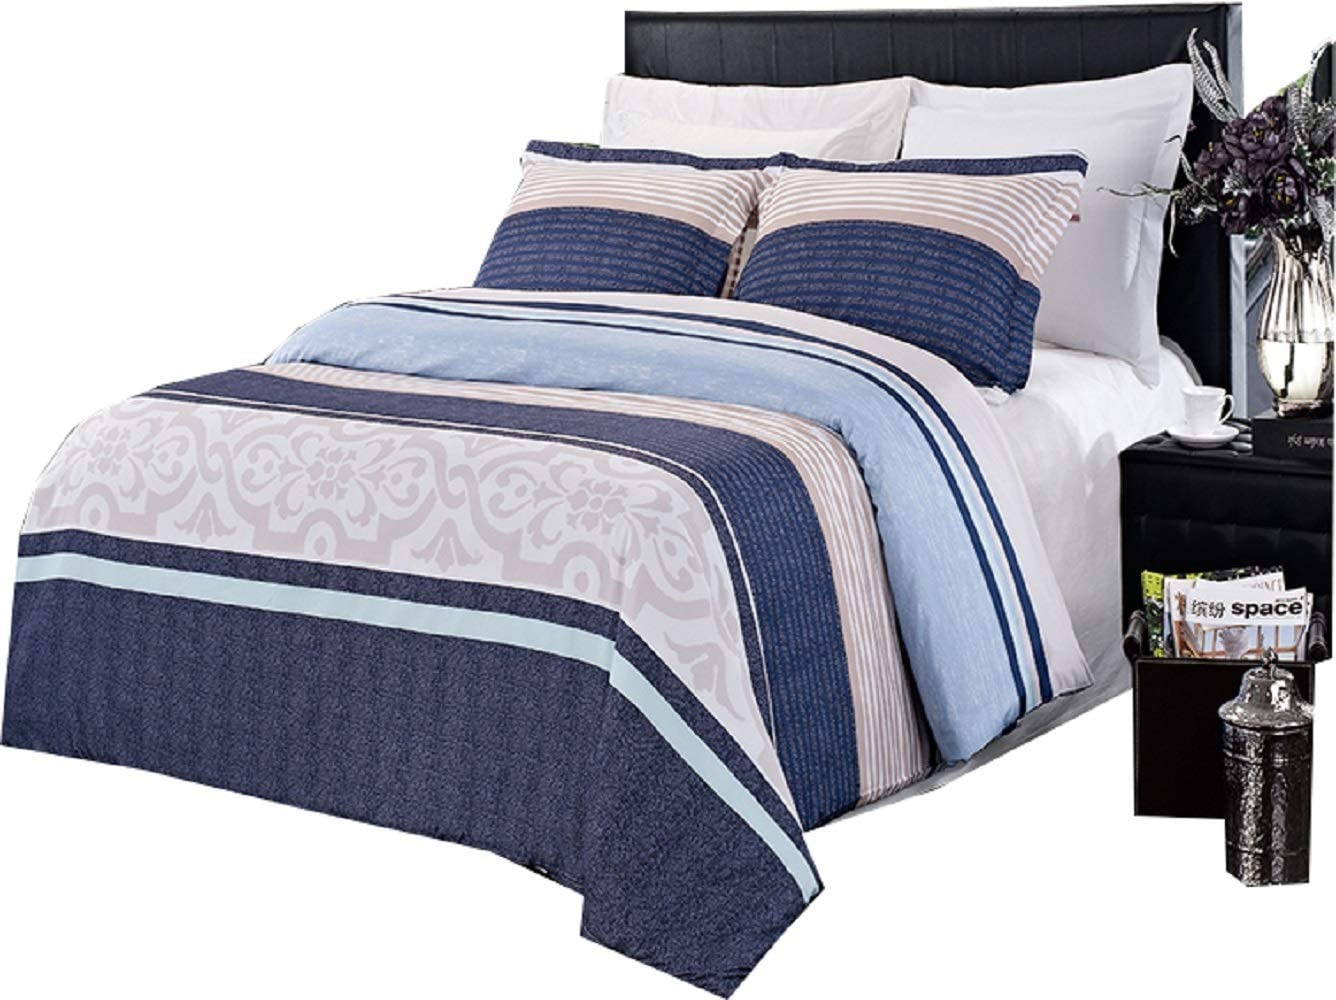 Royal Hotel Park Ave 3 Piece Full Queen Comforter Cover Duvet Cover Set 100 Percent Brushed Microfiber Home Kitchen